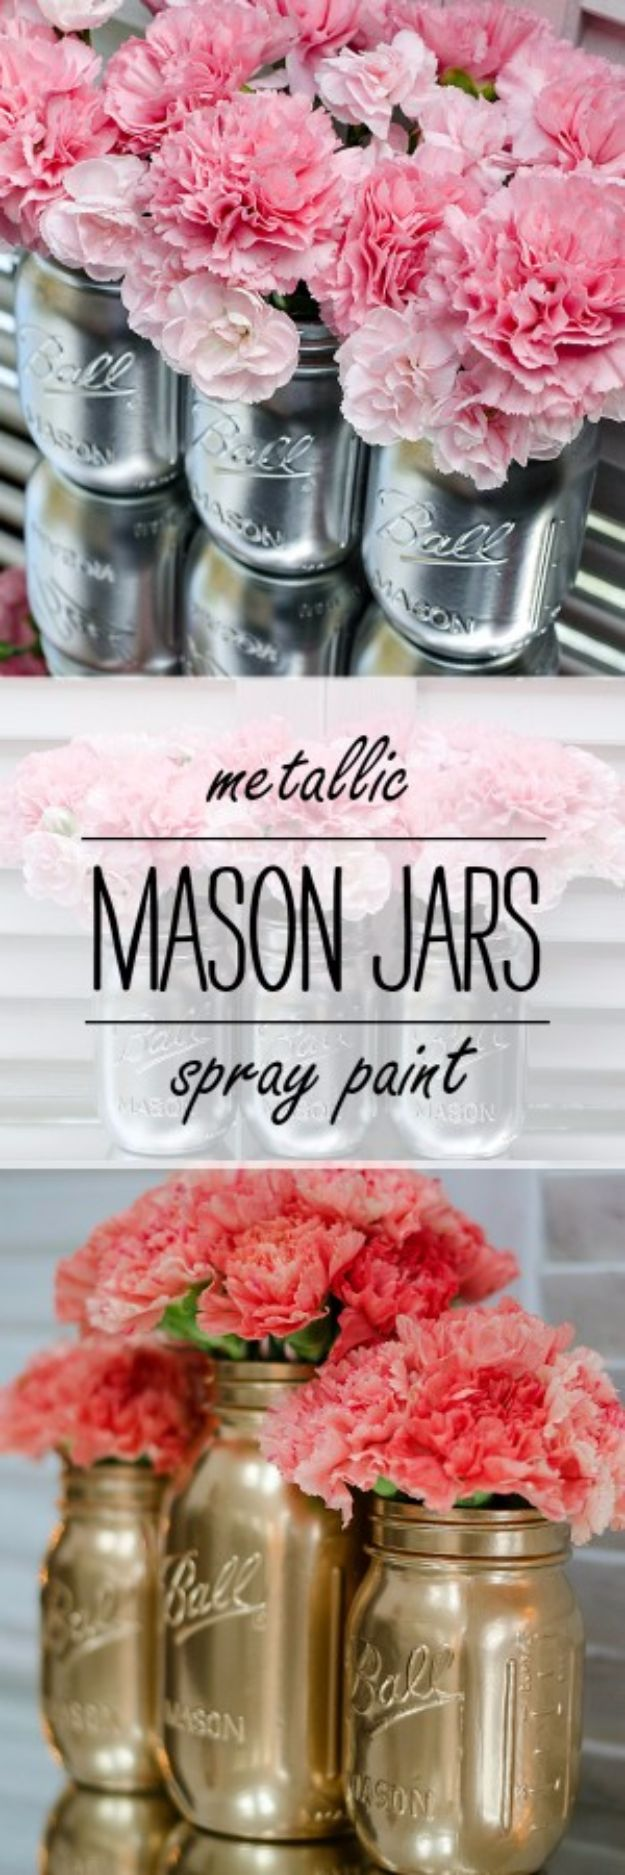 Cute DIY Mason Jar Ideas -Metallic Mason Jars - Fun Crafts, Creative Room Decor, Homemade Gifts, Creative Home Decor Projects and DIY Mason Jar Lights - Cool Crafts for Teens and Tween Girls #diyideas #masonjarcrafts #teencrafts